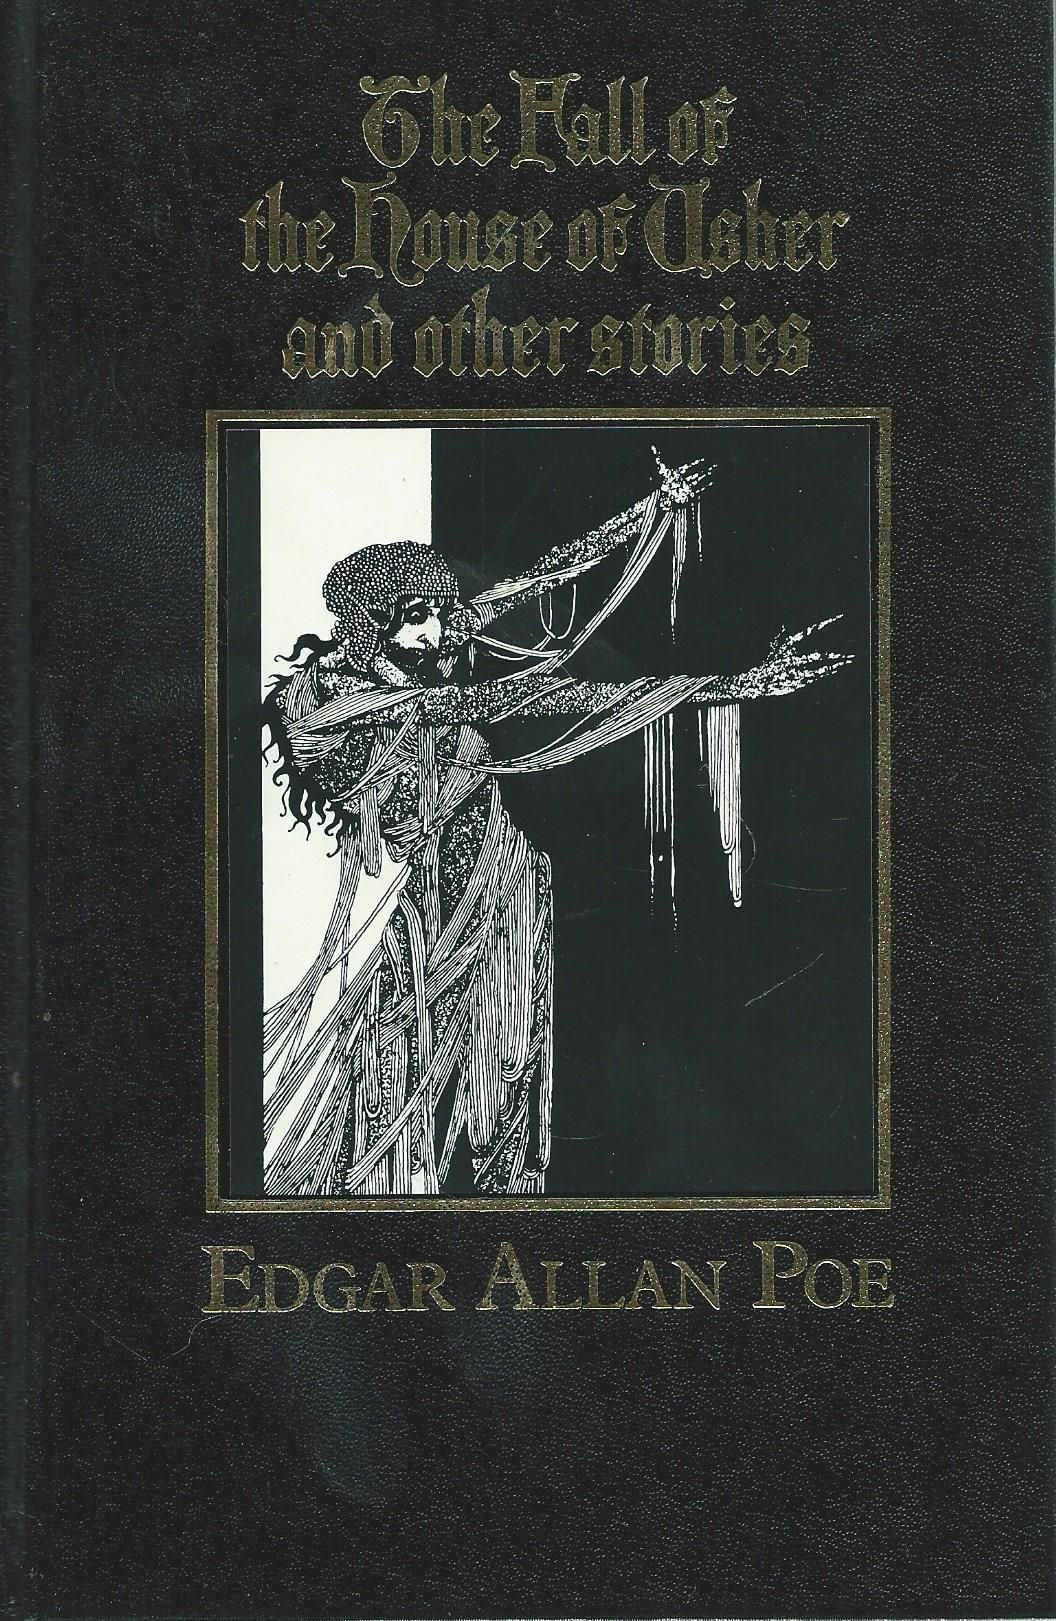 the various settings in poes story the house of usher Narrator of 'the fall of the house of usher': the narrator also invokes various pieces of factual a character in another short story by edgar allan poe.